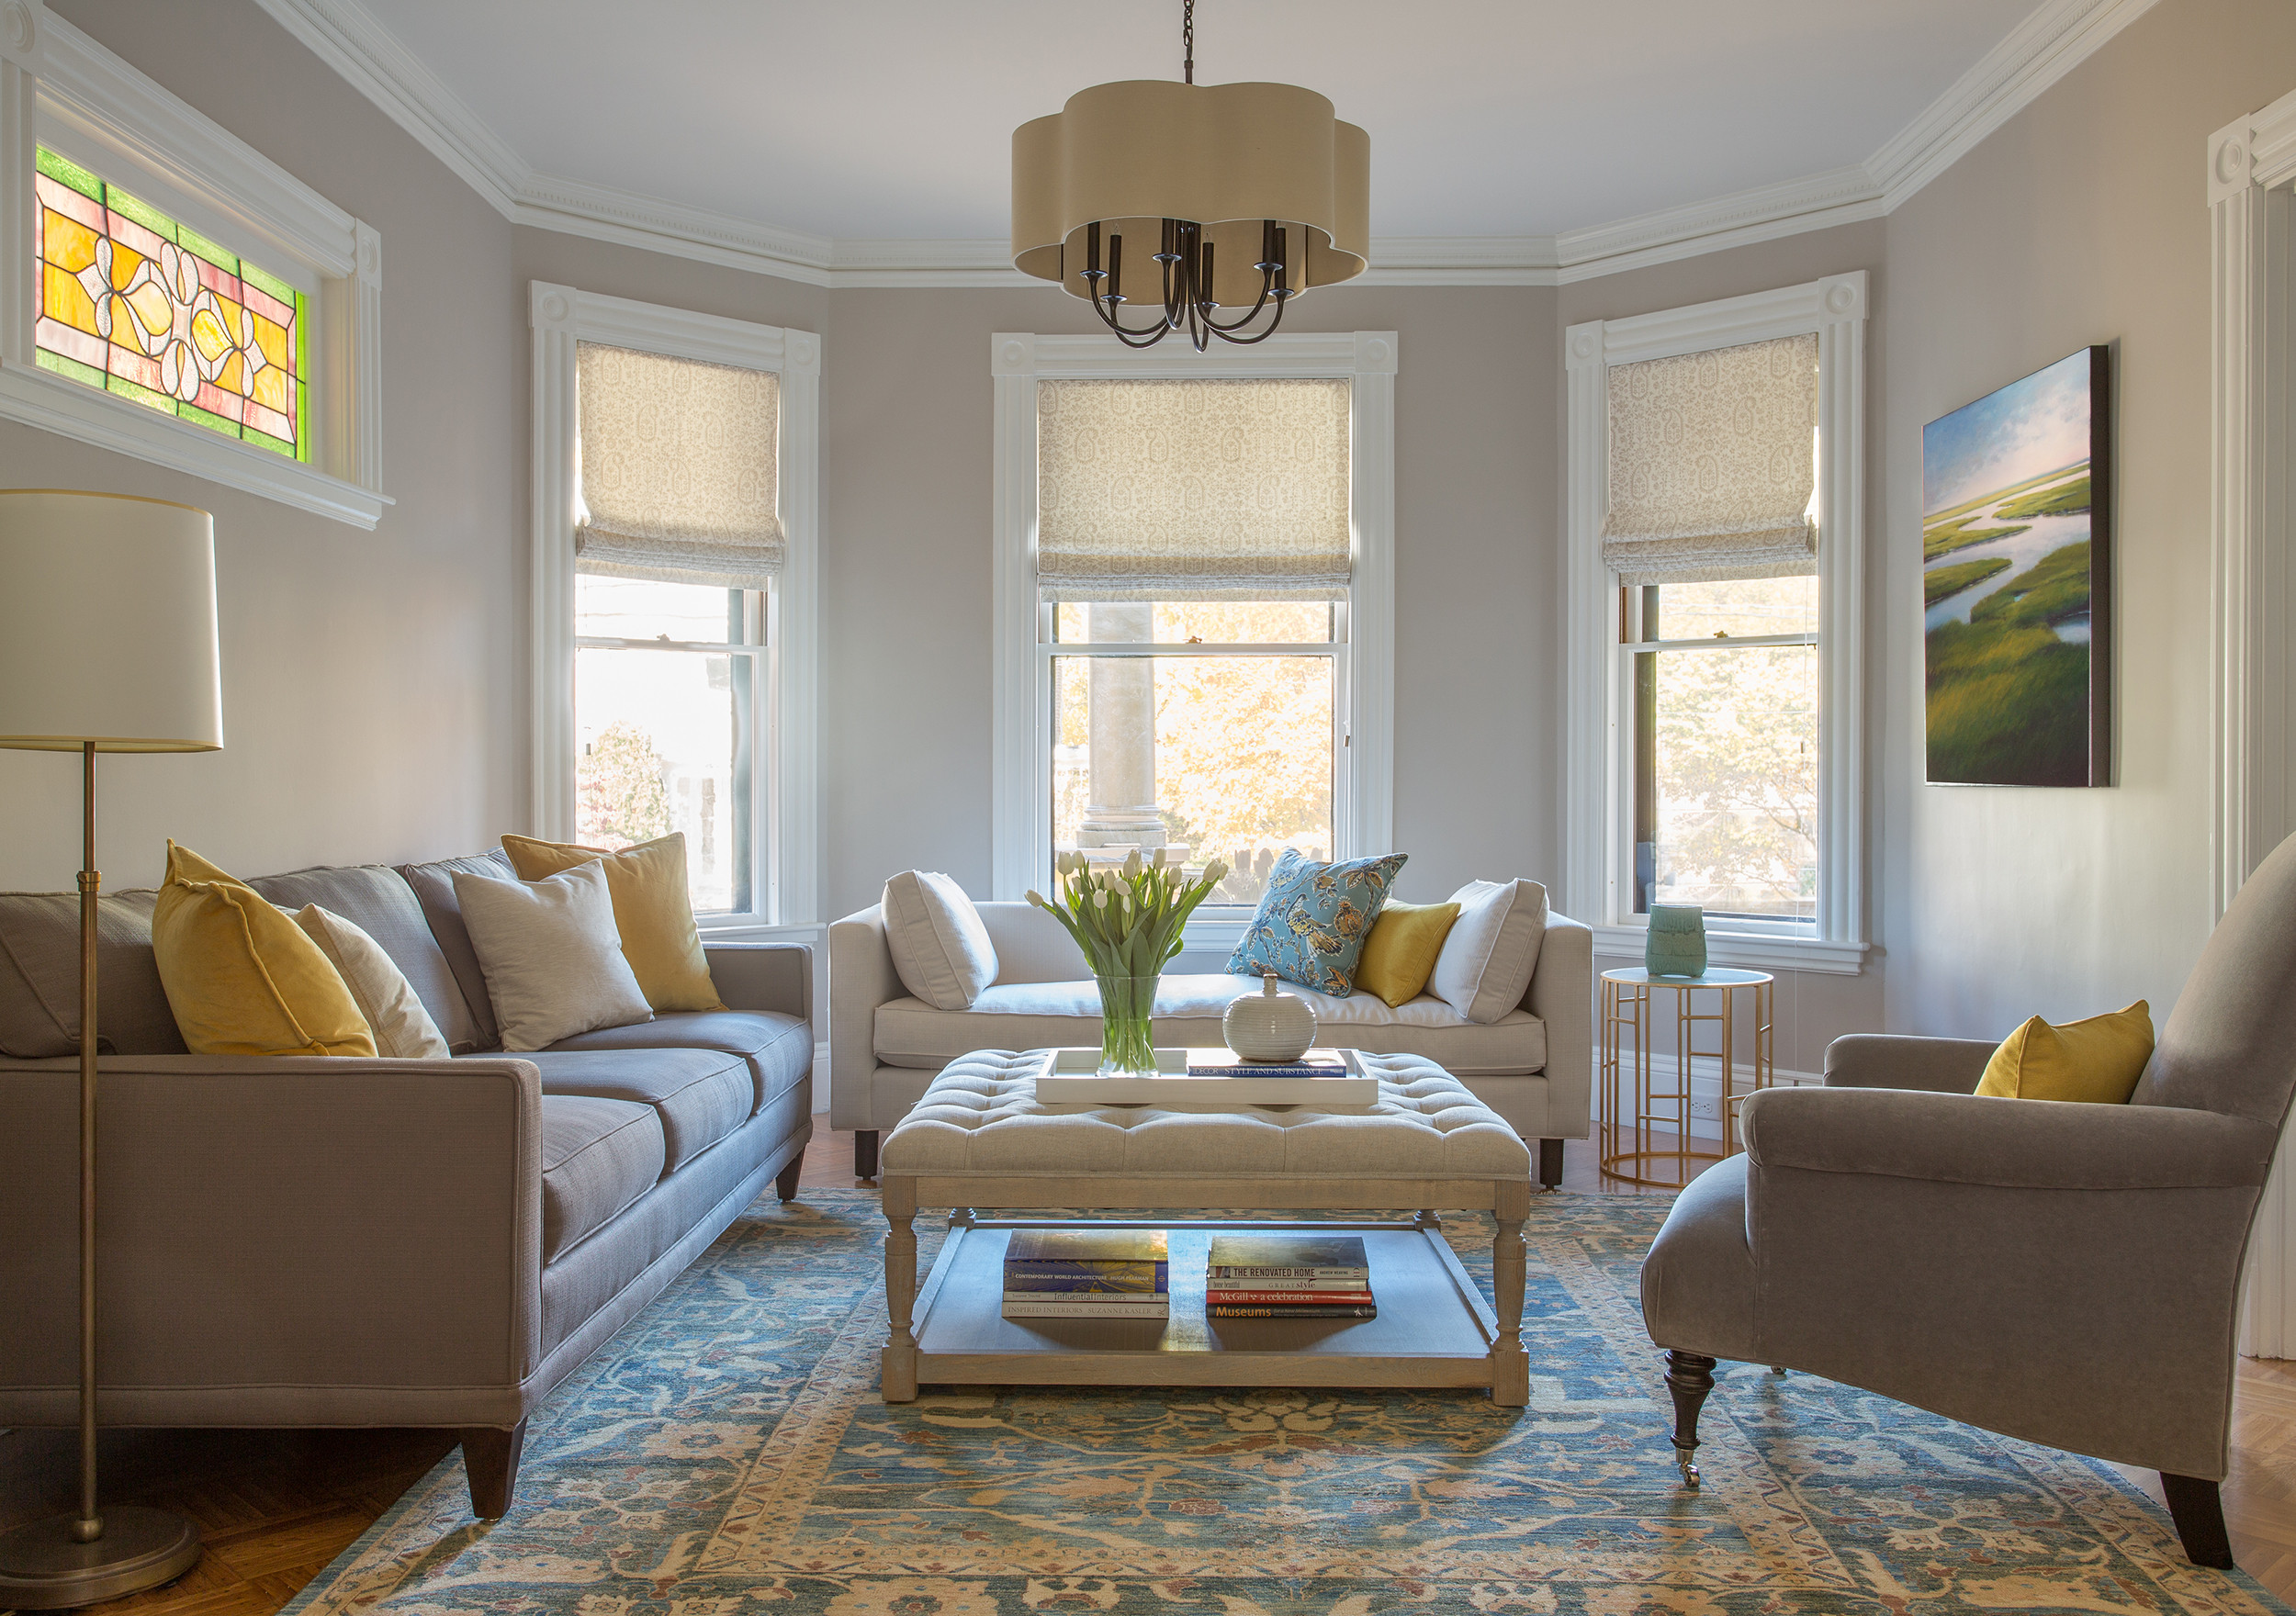 75 Beautiful Victorian Living Room With Gray Walls Pictures Ideas March 2021 Houzz